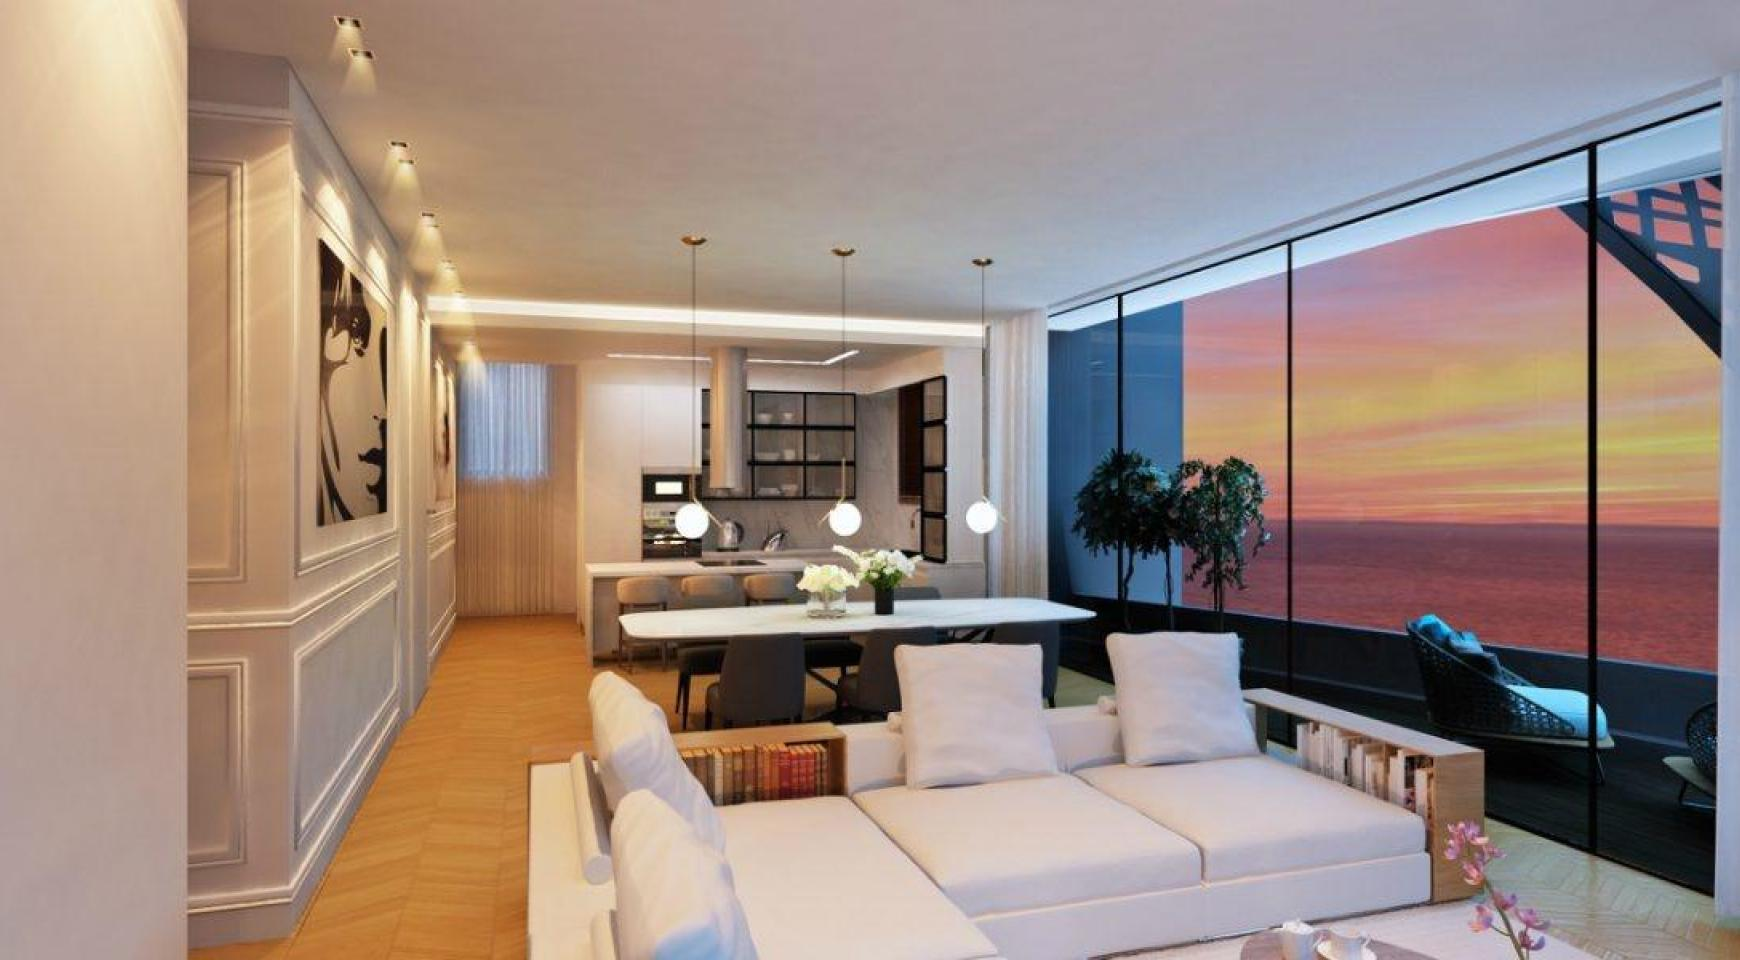 Modern 4 Bedroom Penthouse in a New Unique Project by the Sea - 12